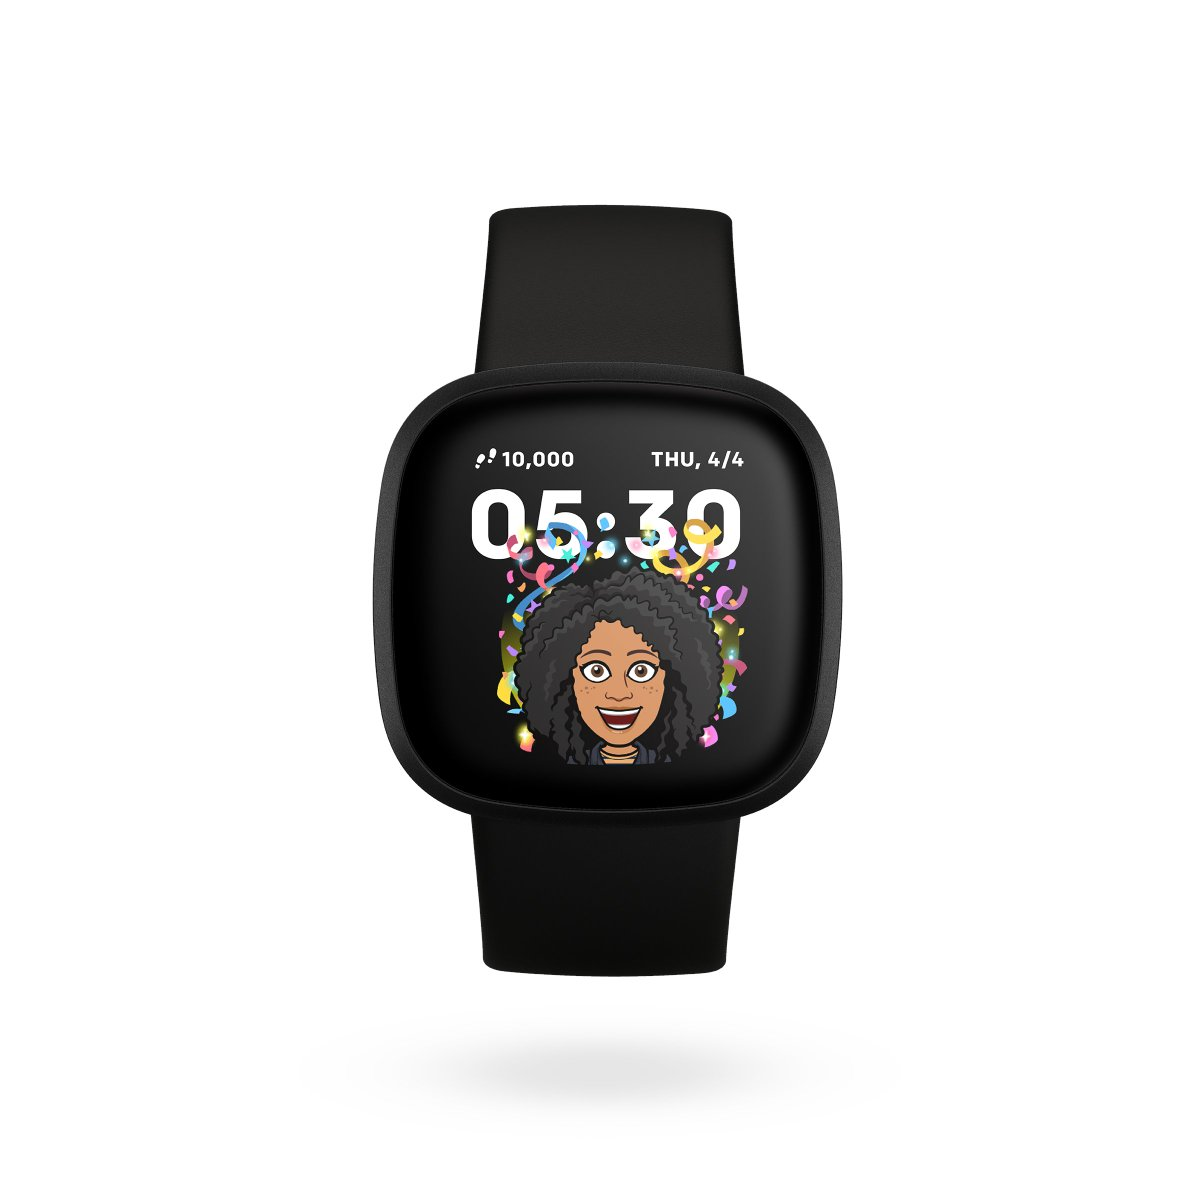 Make health more fun with the Bitmoji clockface on the new @Fitbit Versa 3 🎉 Shop https://t.co/lOAdZm1WX5 https://t.co/YMbvoSlyxk